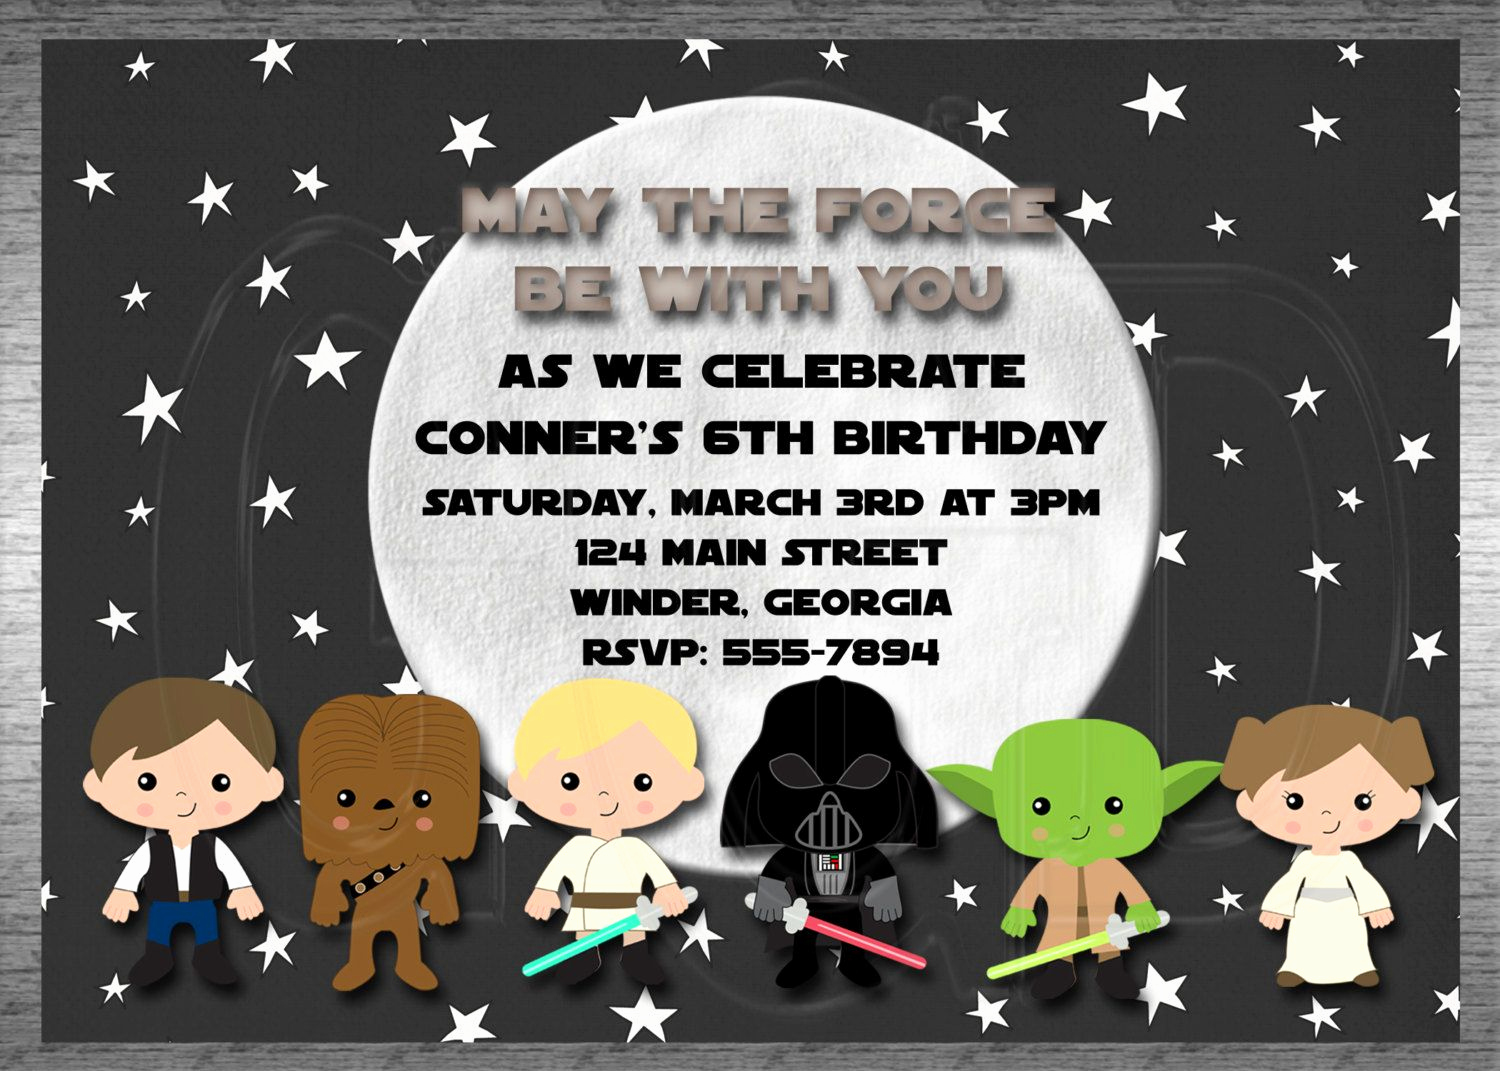 Star Wars Invitation Template Free Beautiful Galaxy Star Wars Invitation Star Wars Birthday Party